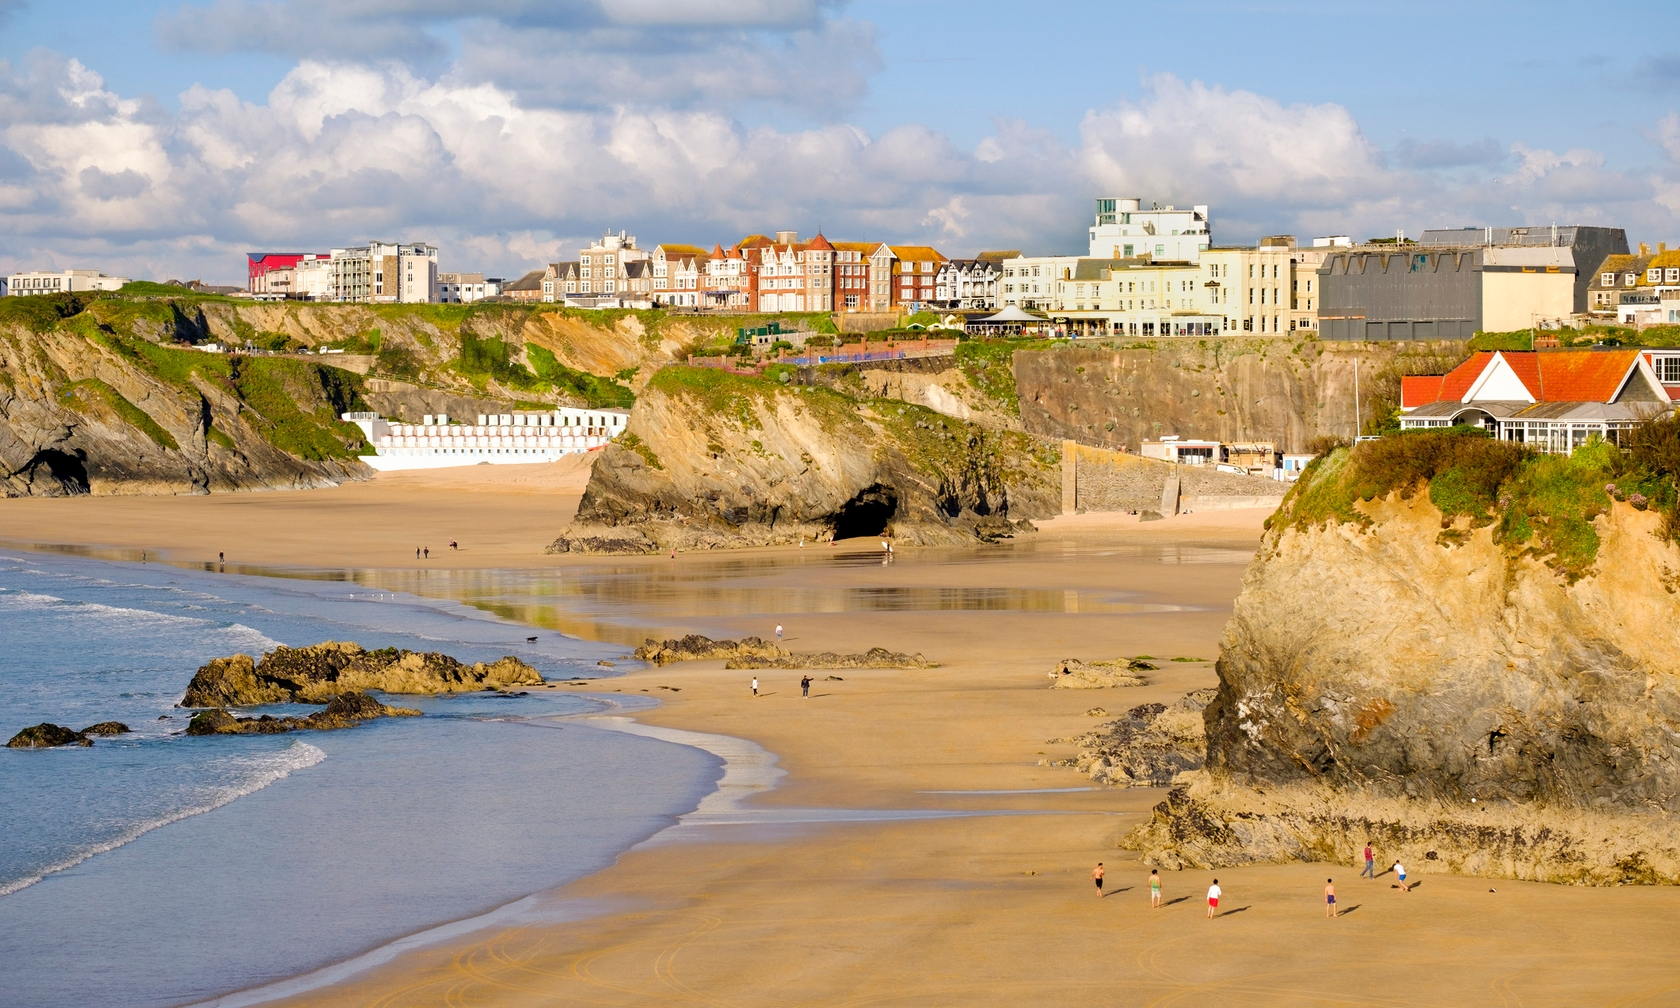 Holiday cottages in Newquay